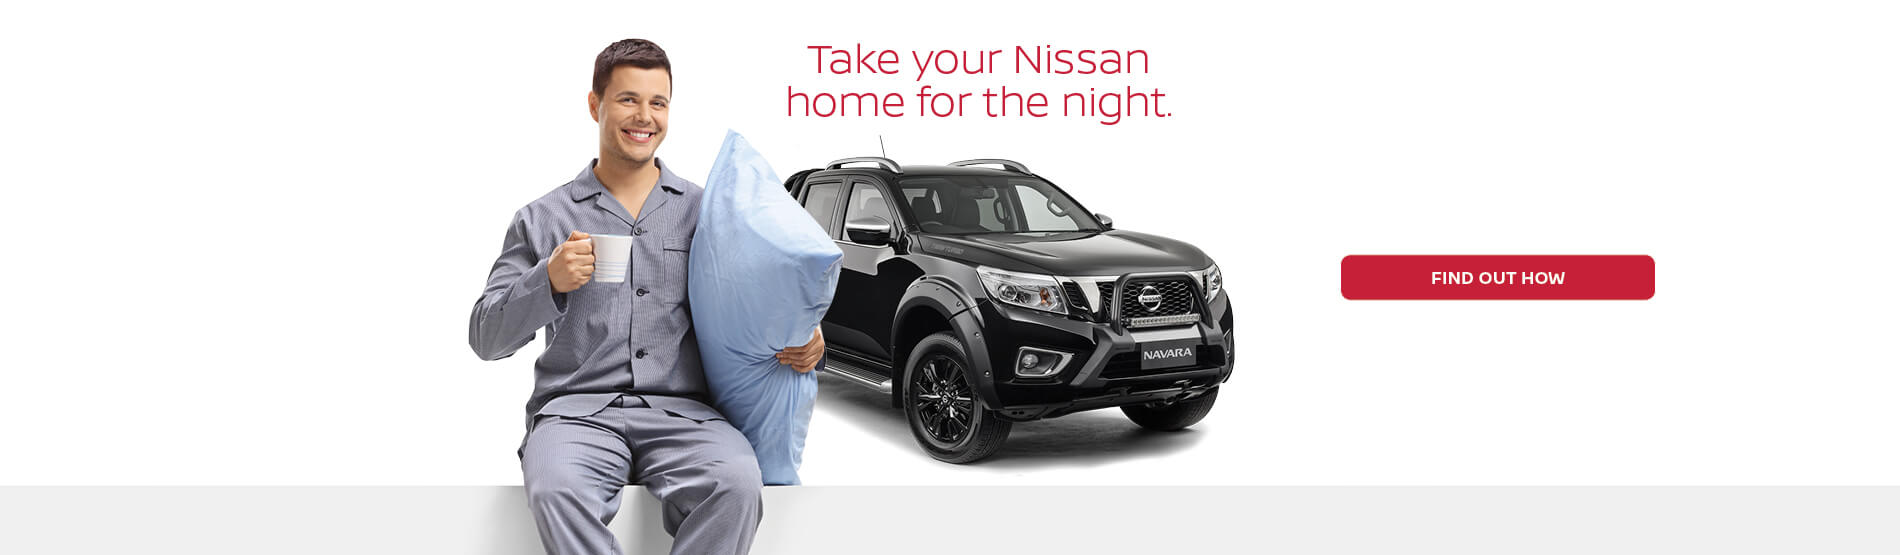 Ringwood Nissan - Take Nissan Home